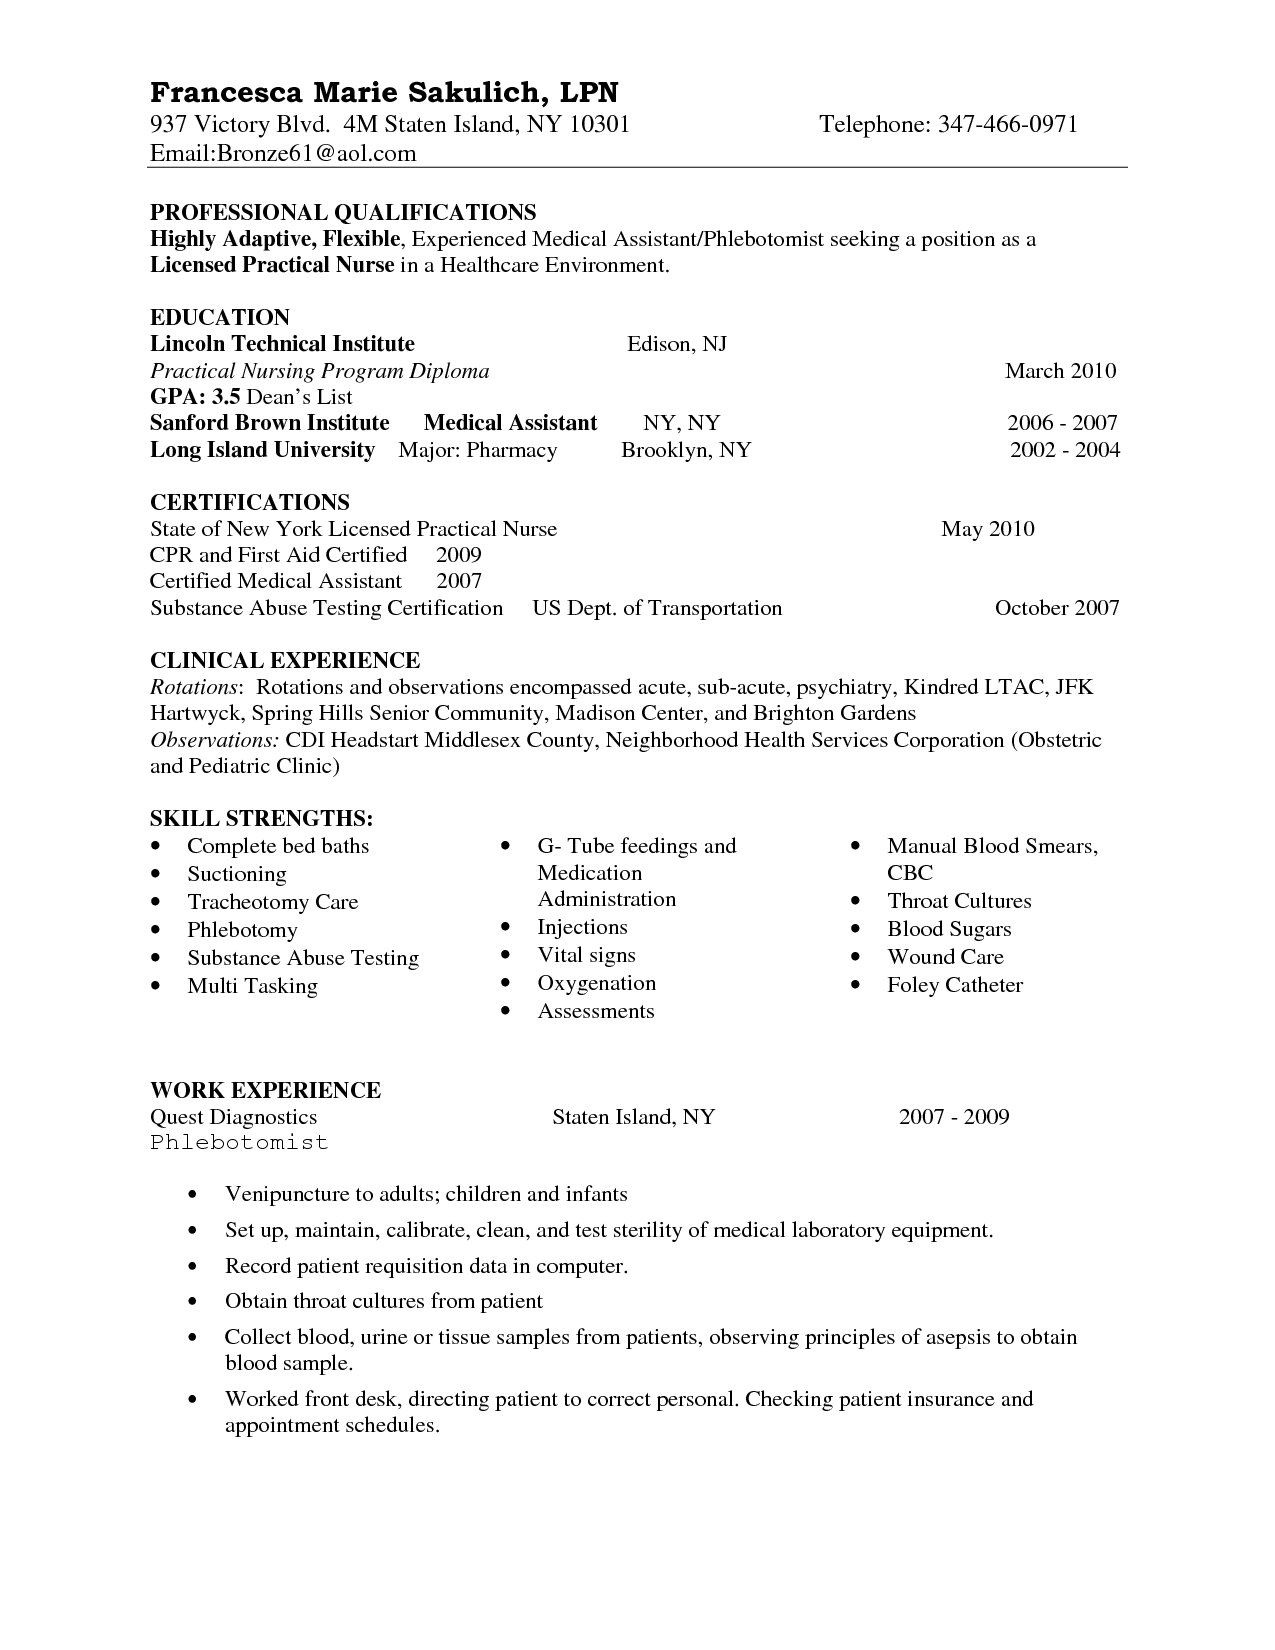 Entry Level LPN Resume Sample Nursing Pinterest